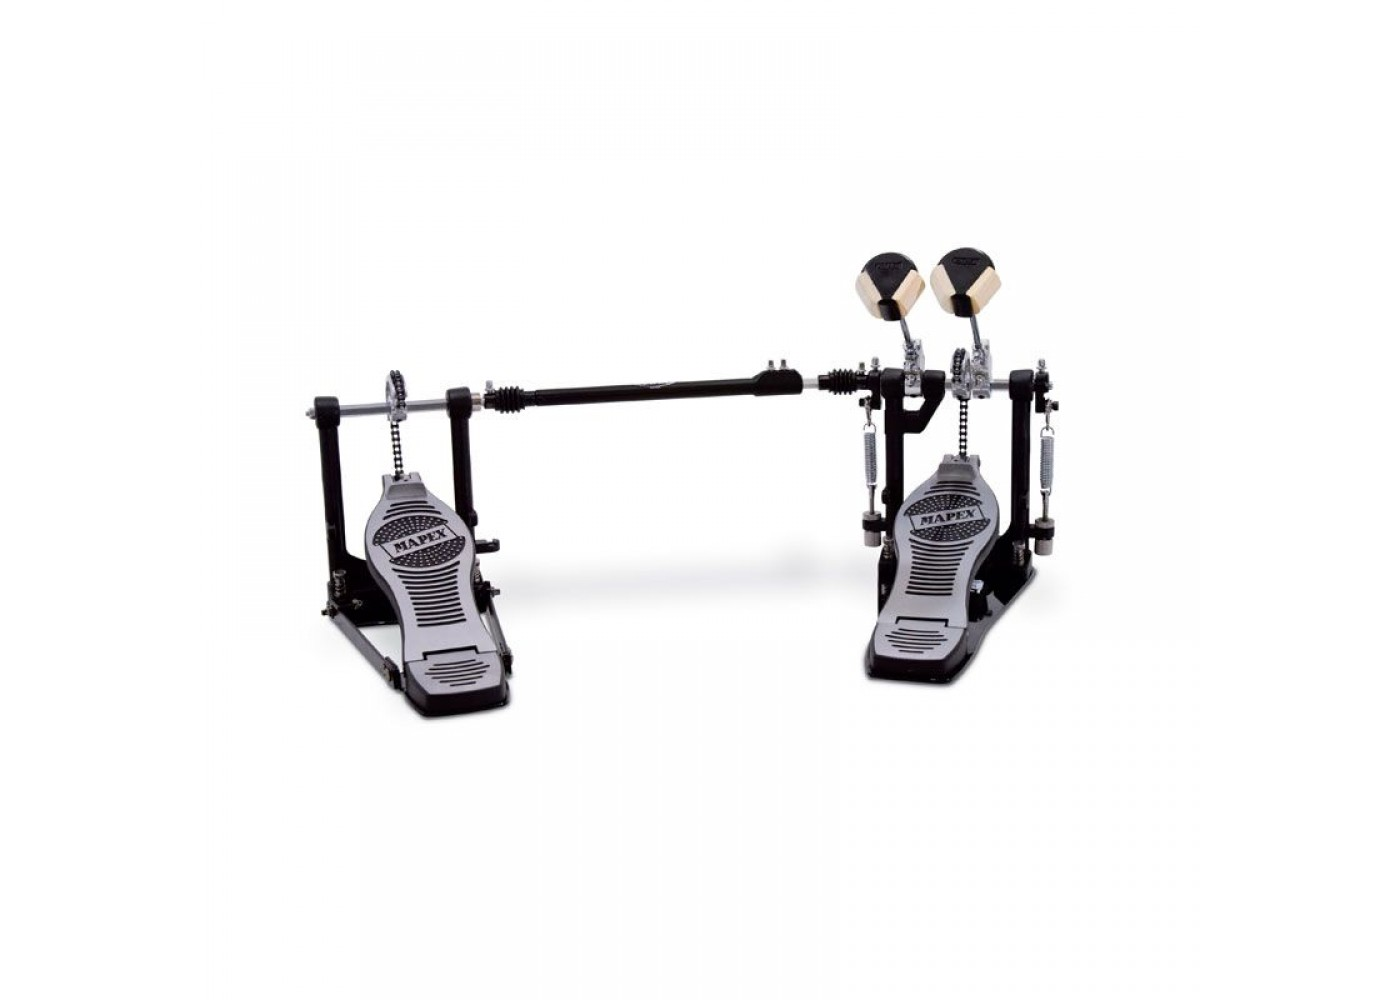 mapex p500tw double bass drum pedal with single chain drive